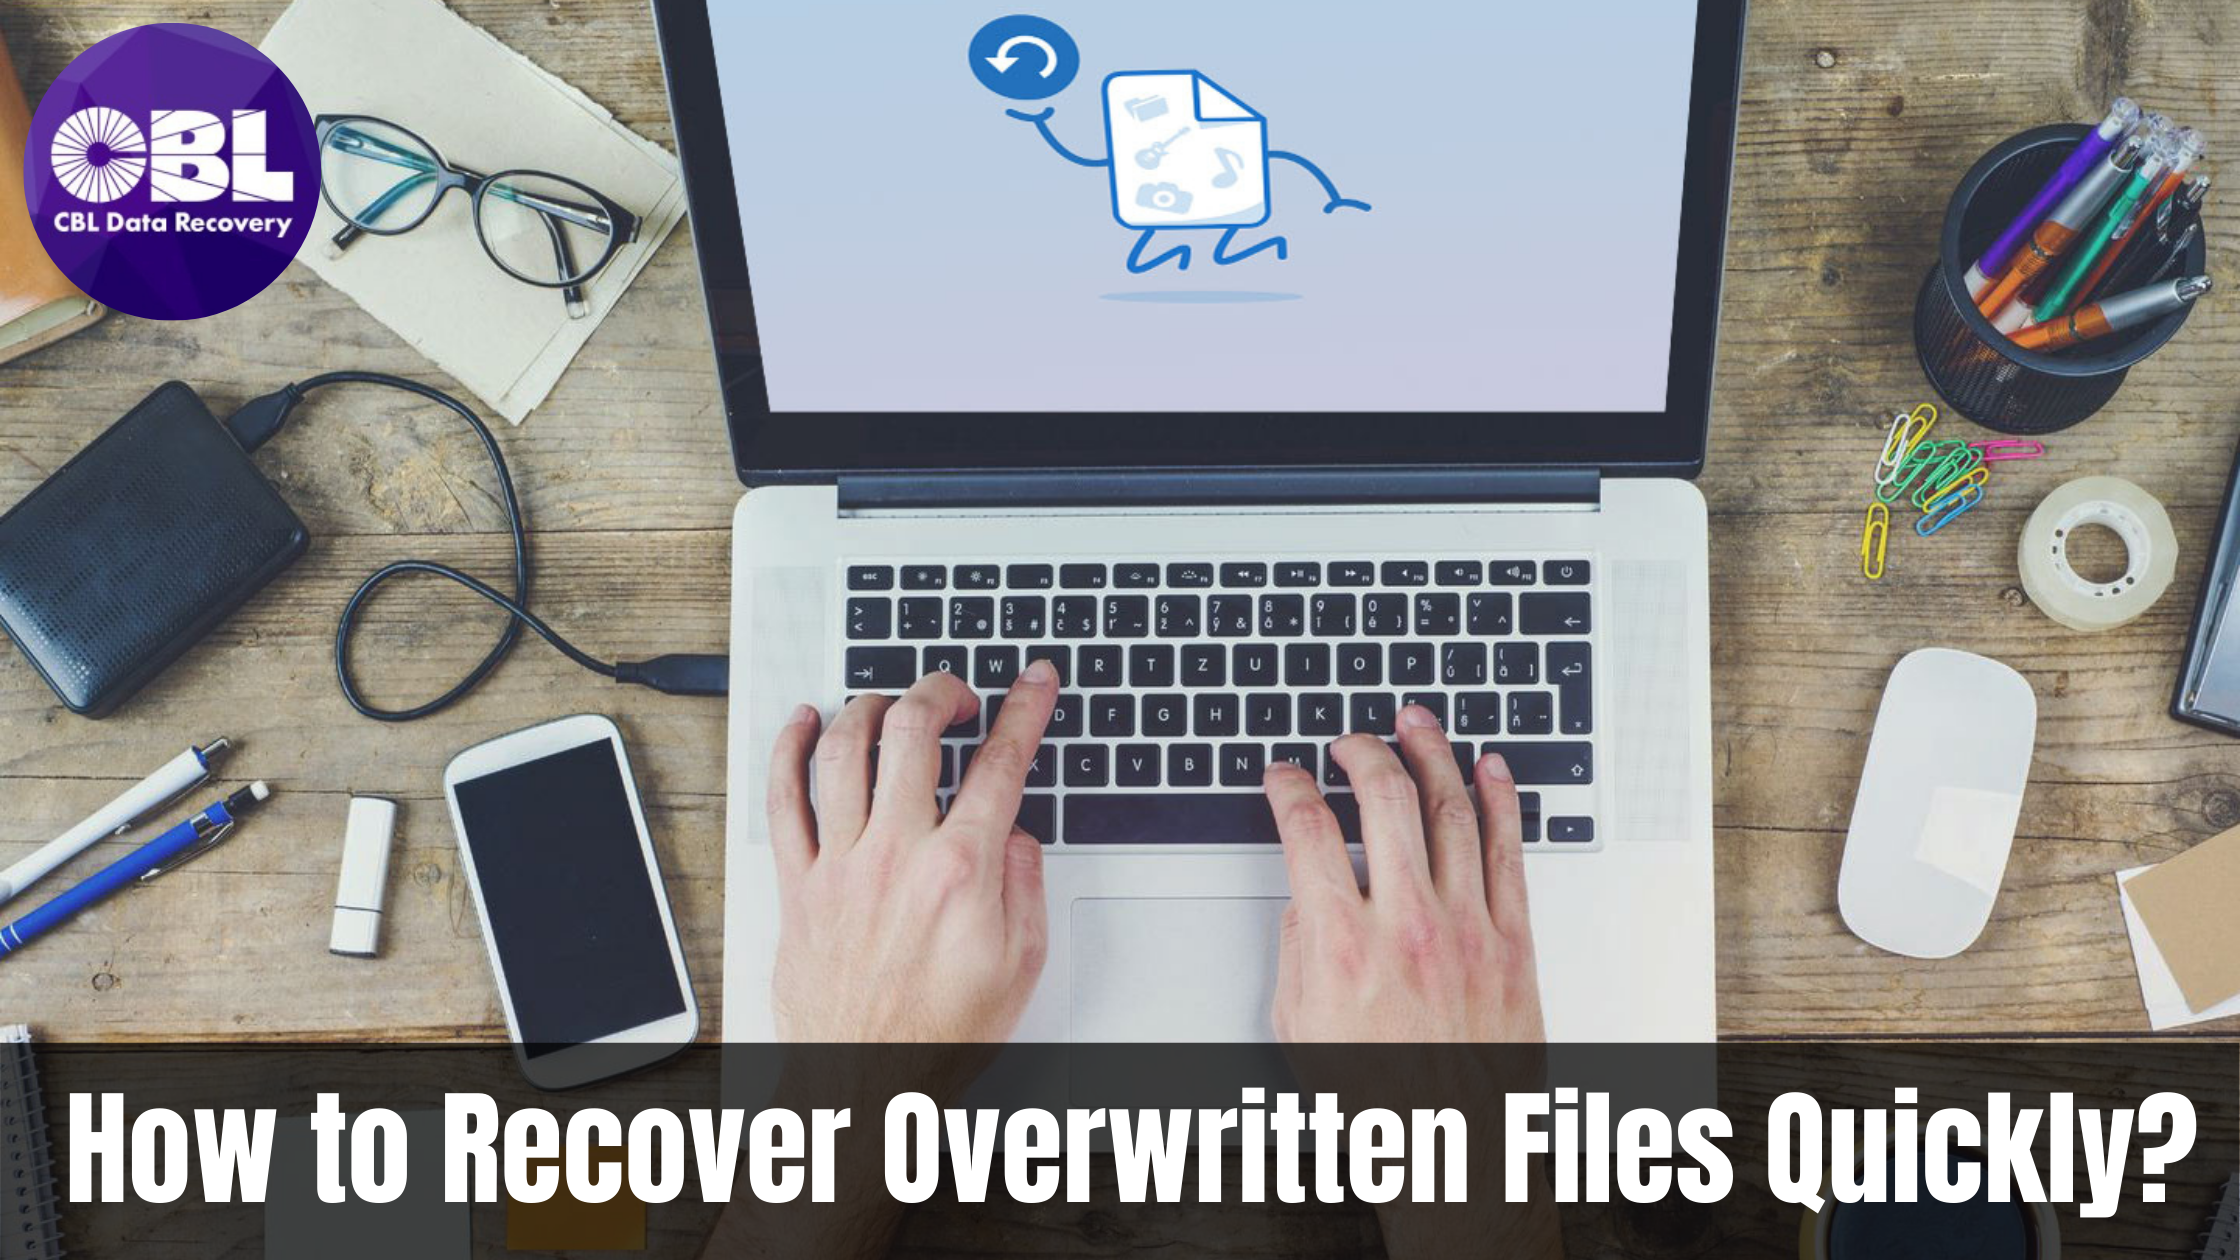 How to Recover Overwritten Files Quickly?